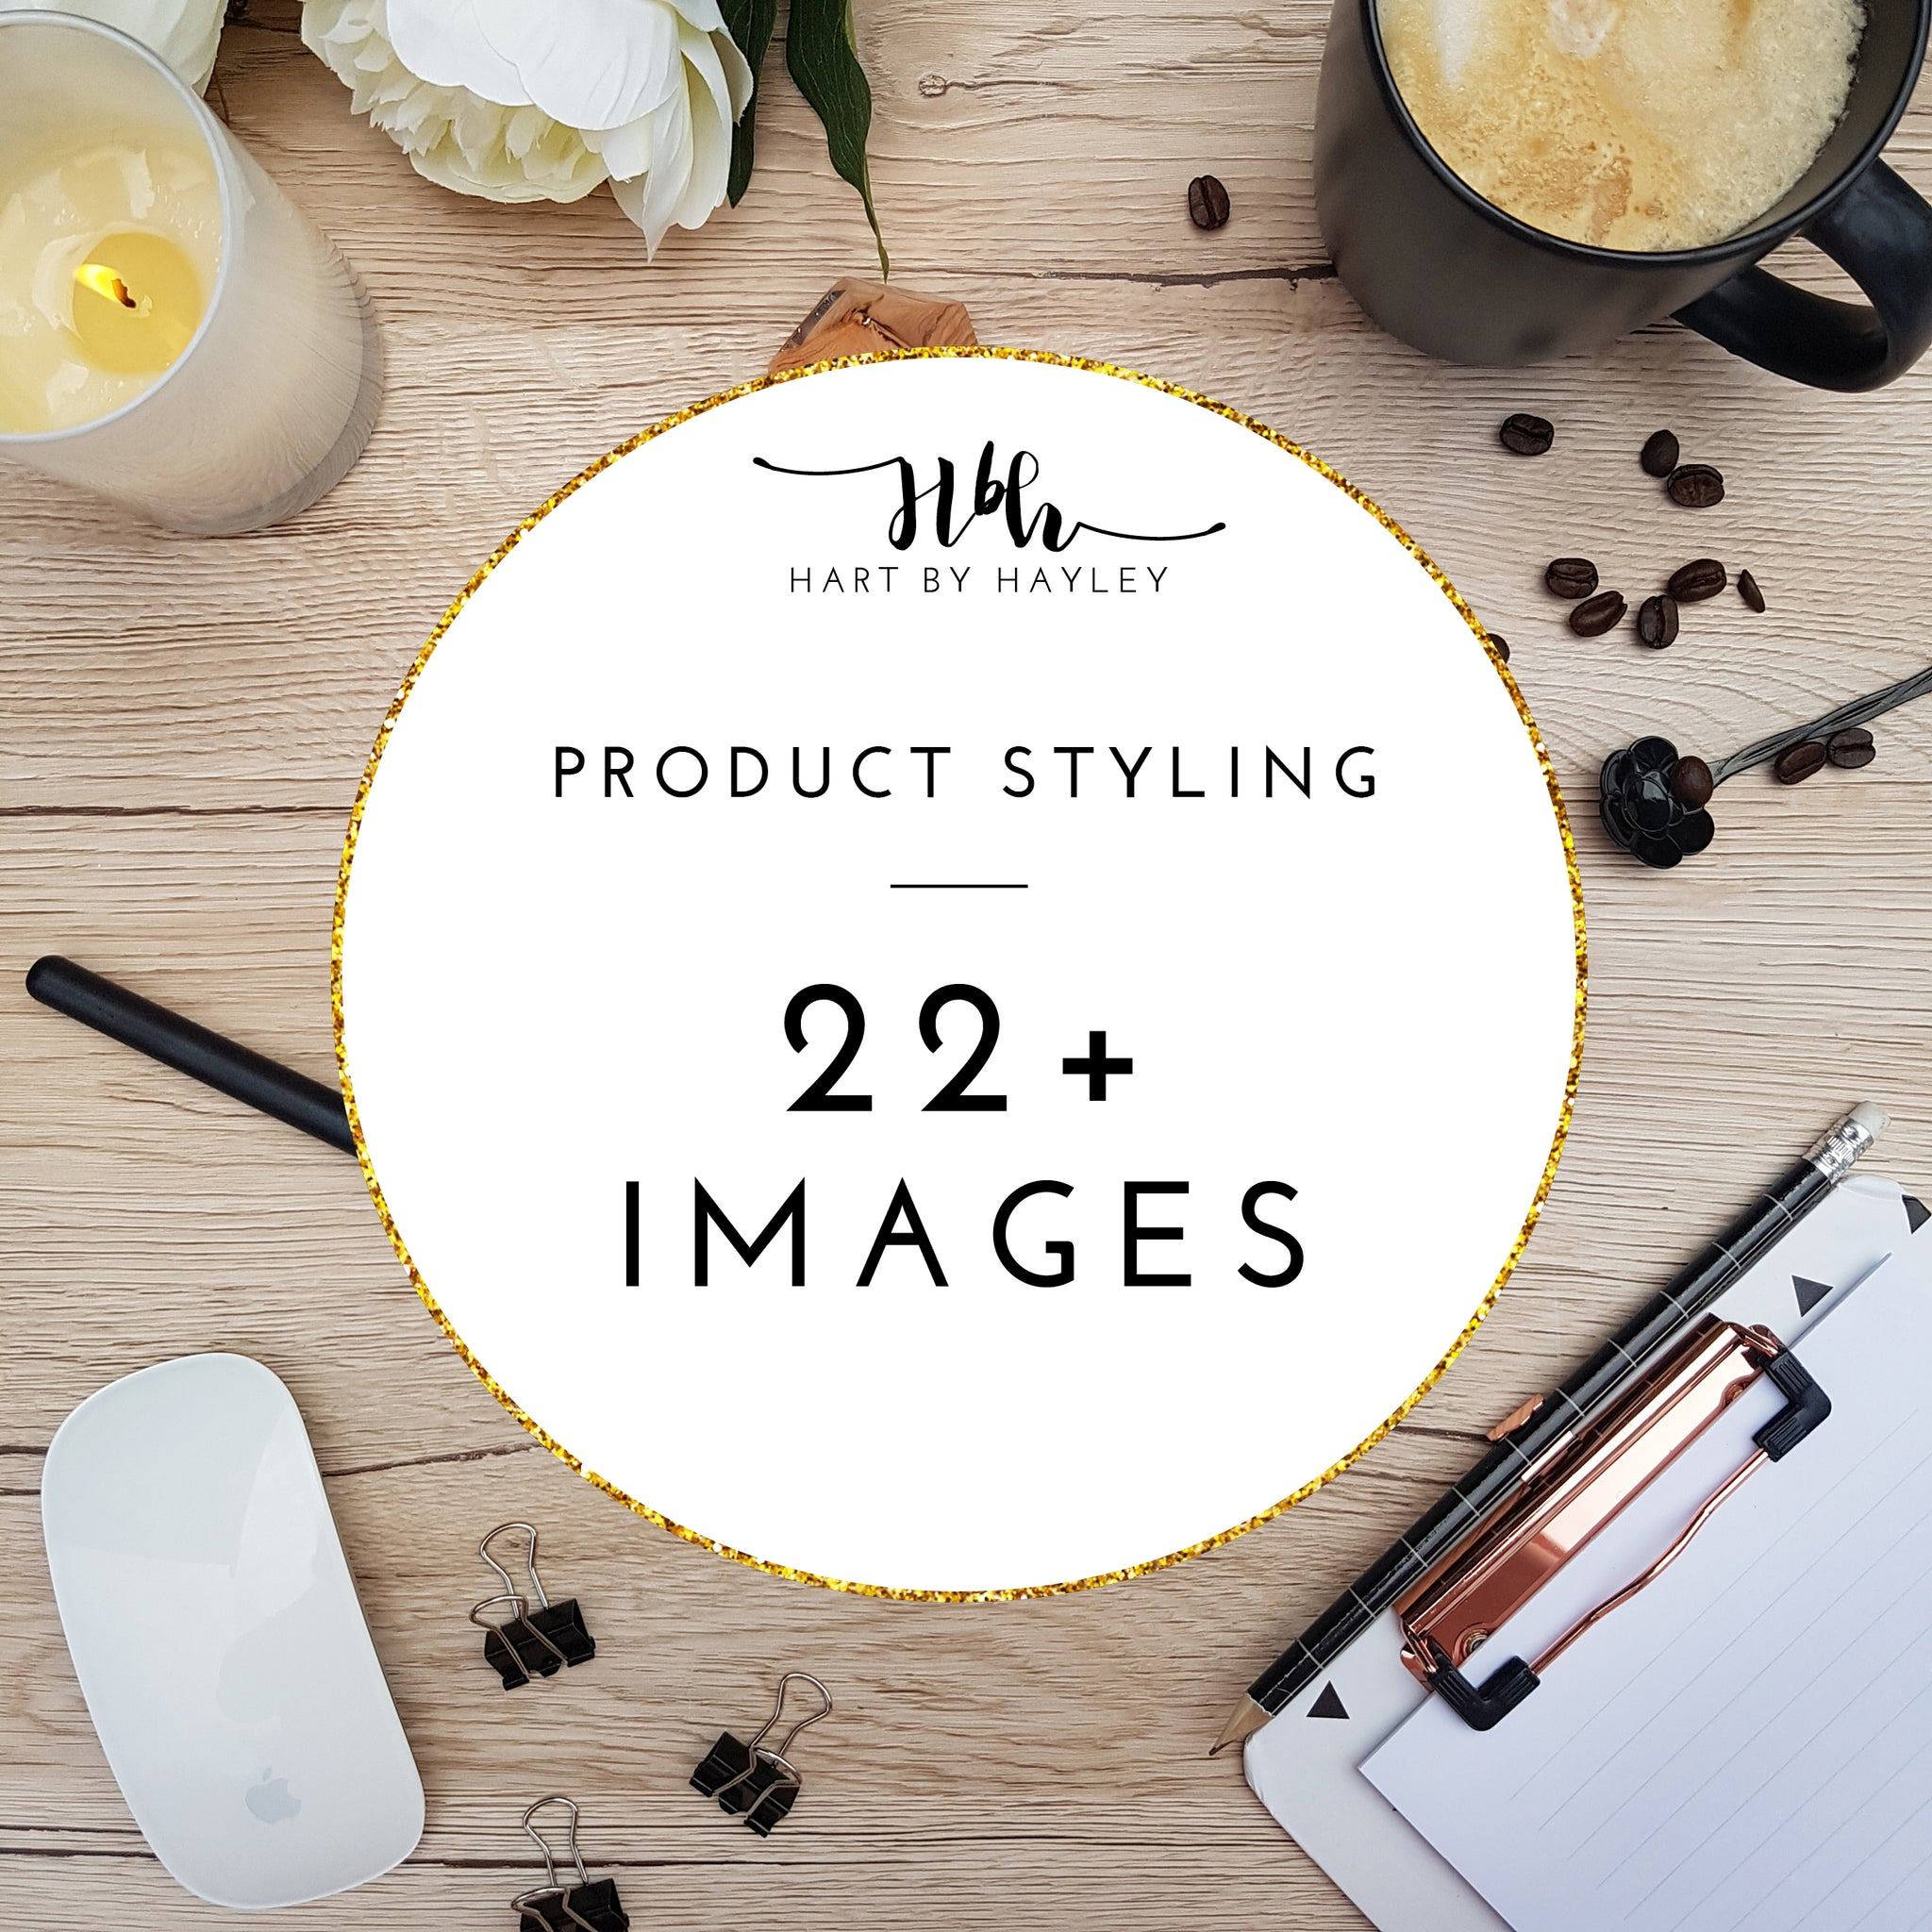 Product styling for 22+ images